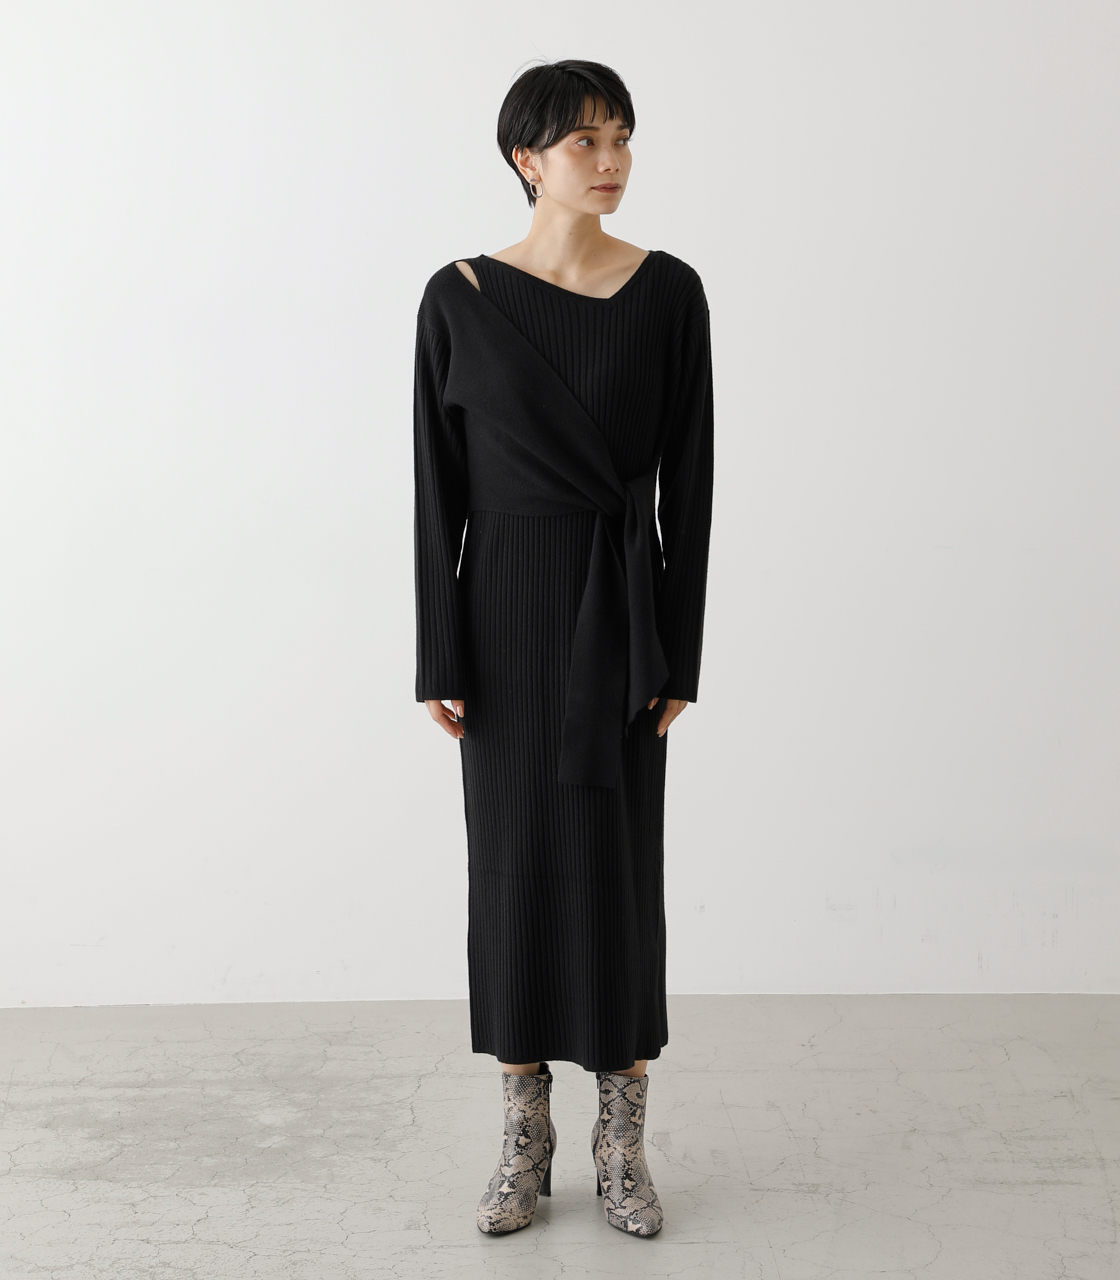 FRONT LINK ASYMMETRY KNIT OP/フロントリンクアシンメトリーニットワンピース【MOOK53掲載 90004】 詳細画像 BLK 5